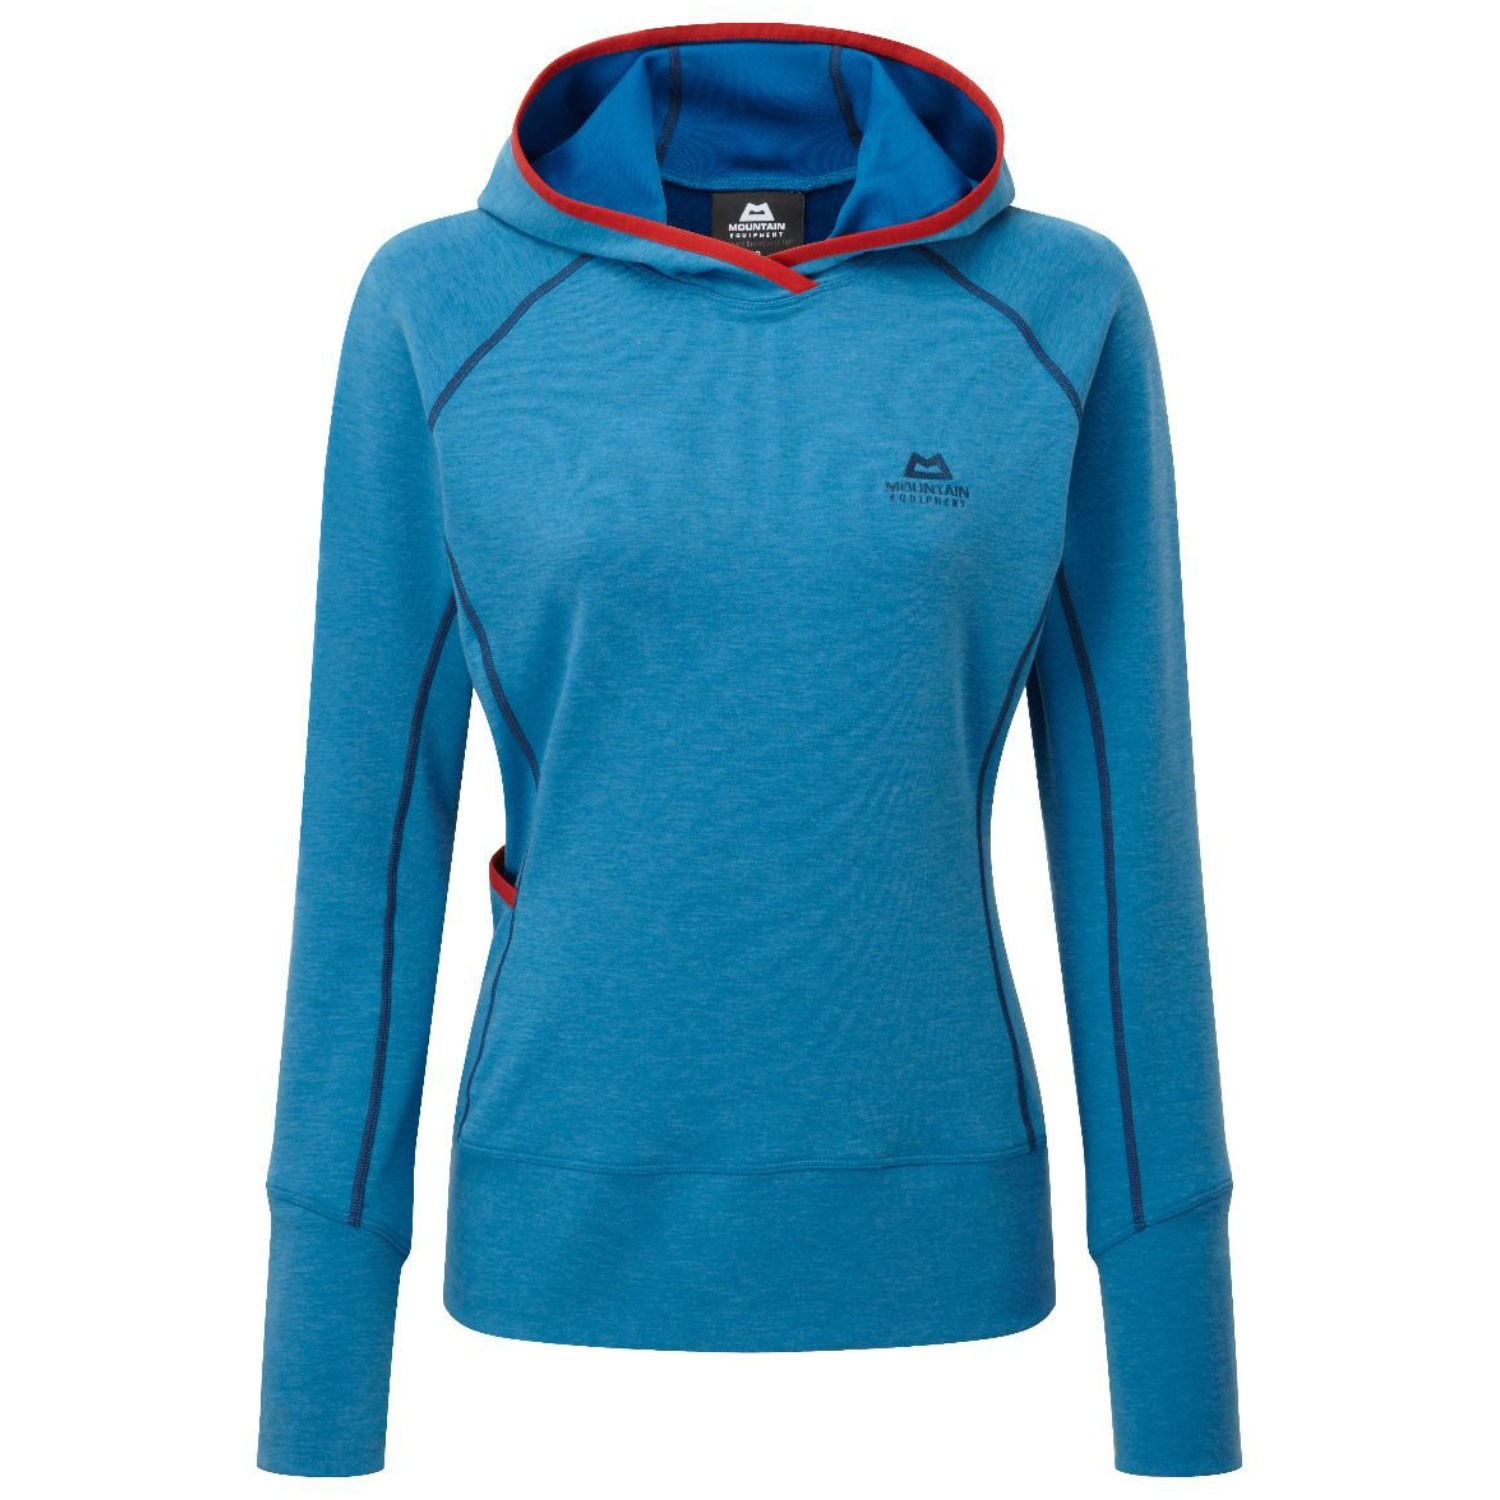 Mountain Equipment Women's Cobra Hoody - Lagoon Blue